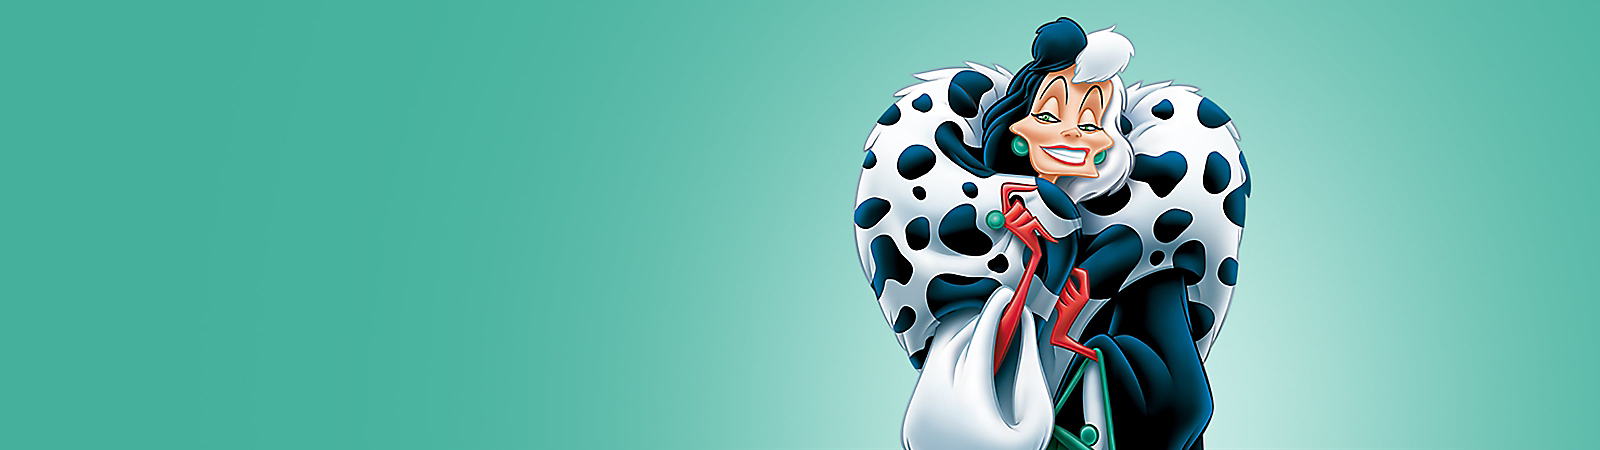 Background image of Cruella de Vil